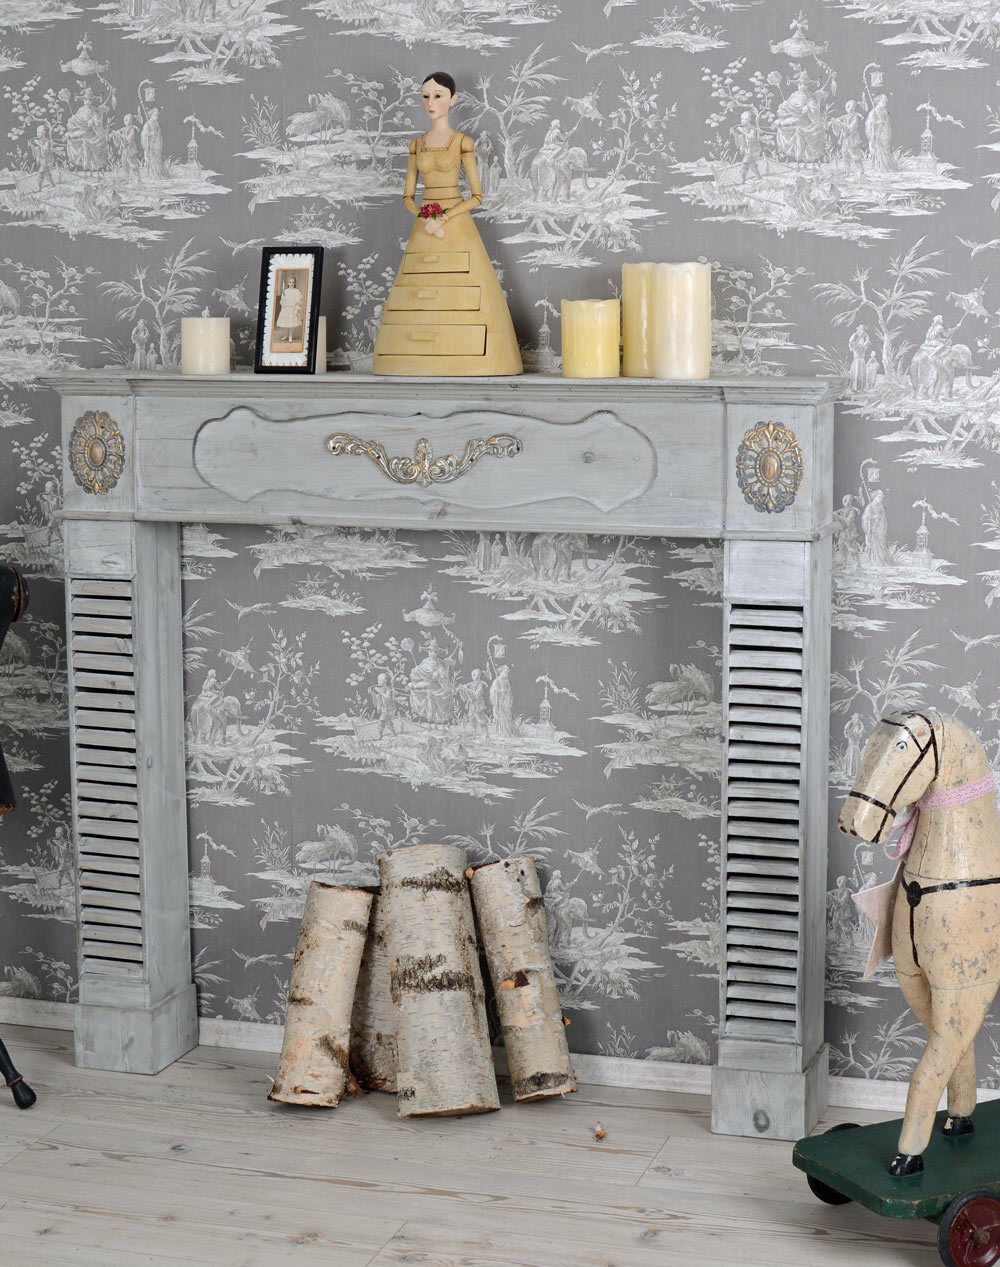 kaminkonsole shabby chic kamin holzkamin kaminumrandung deko kamin eur 159 99 picclick de. Black Bedroom Furniture Sets. Home Design Ideas